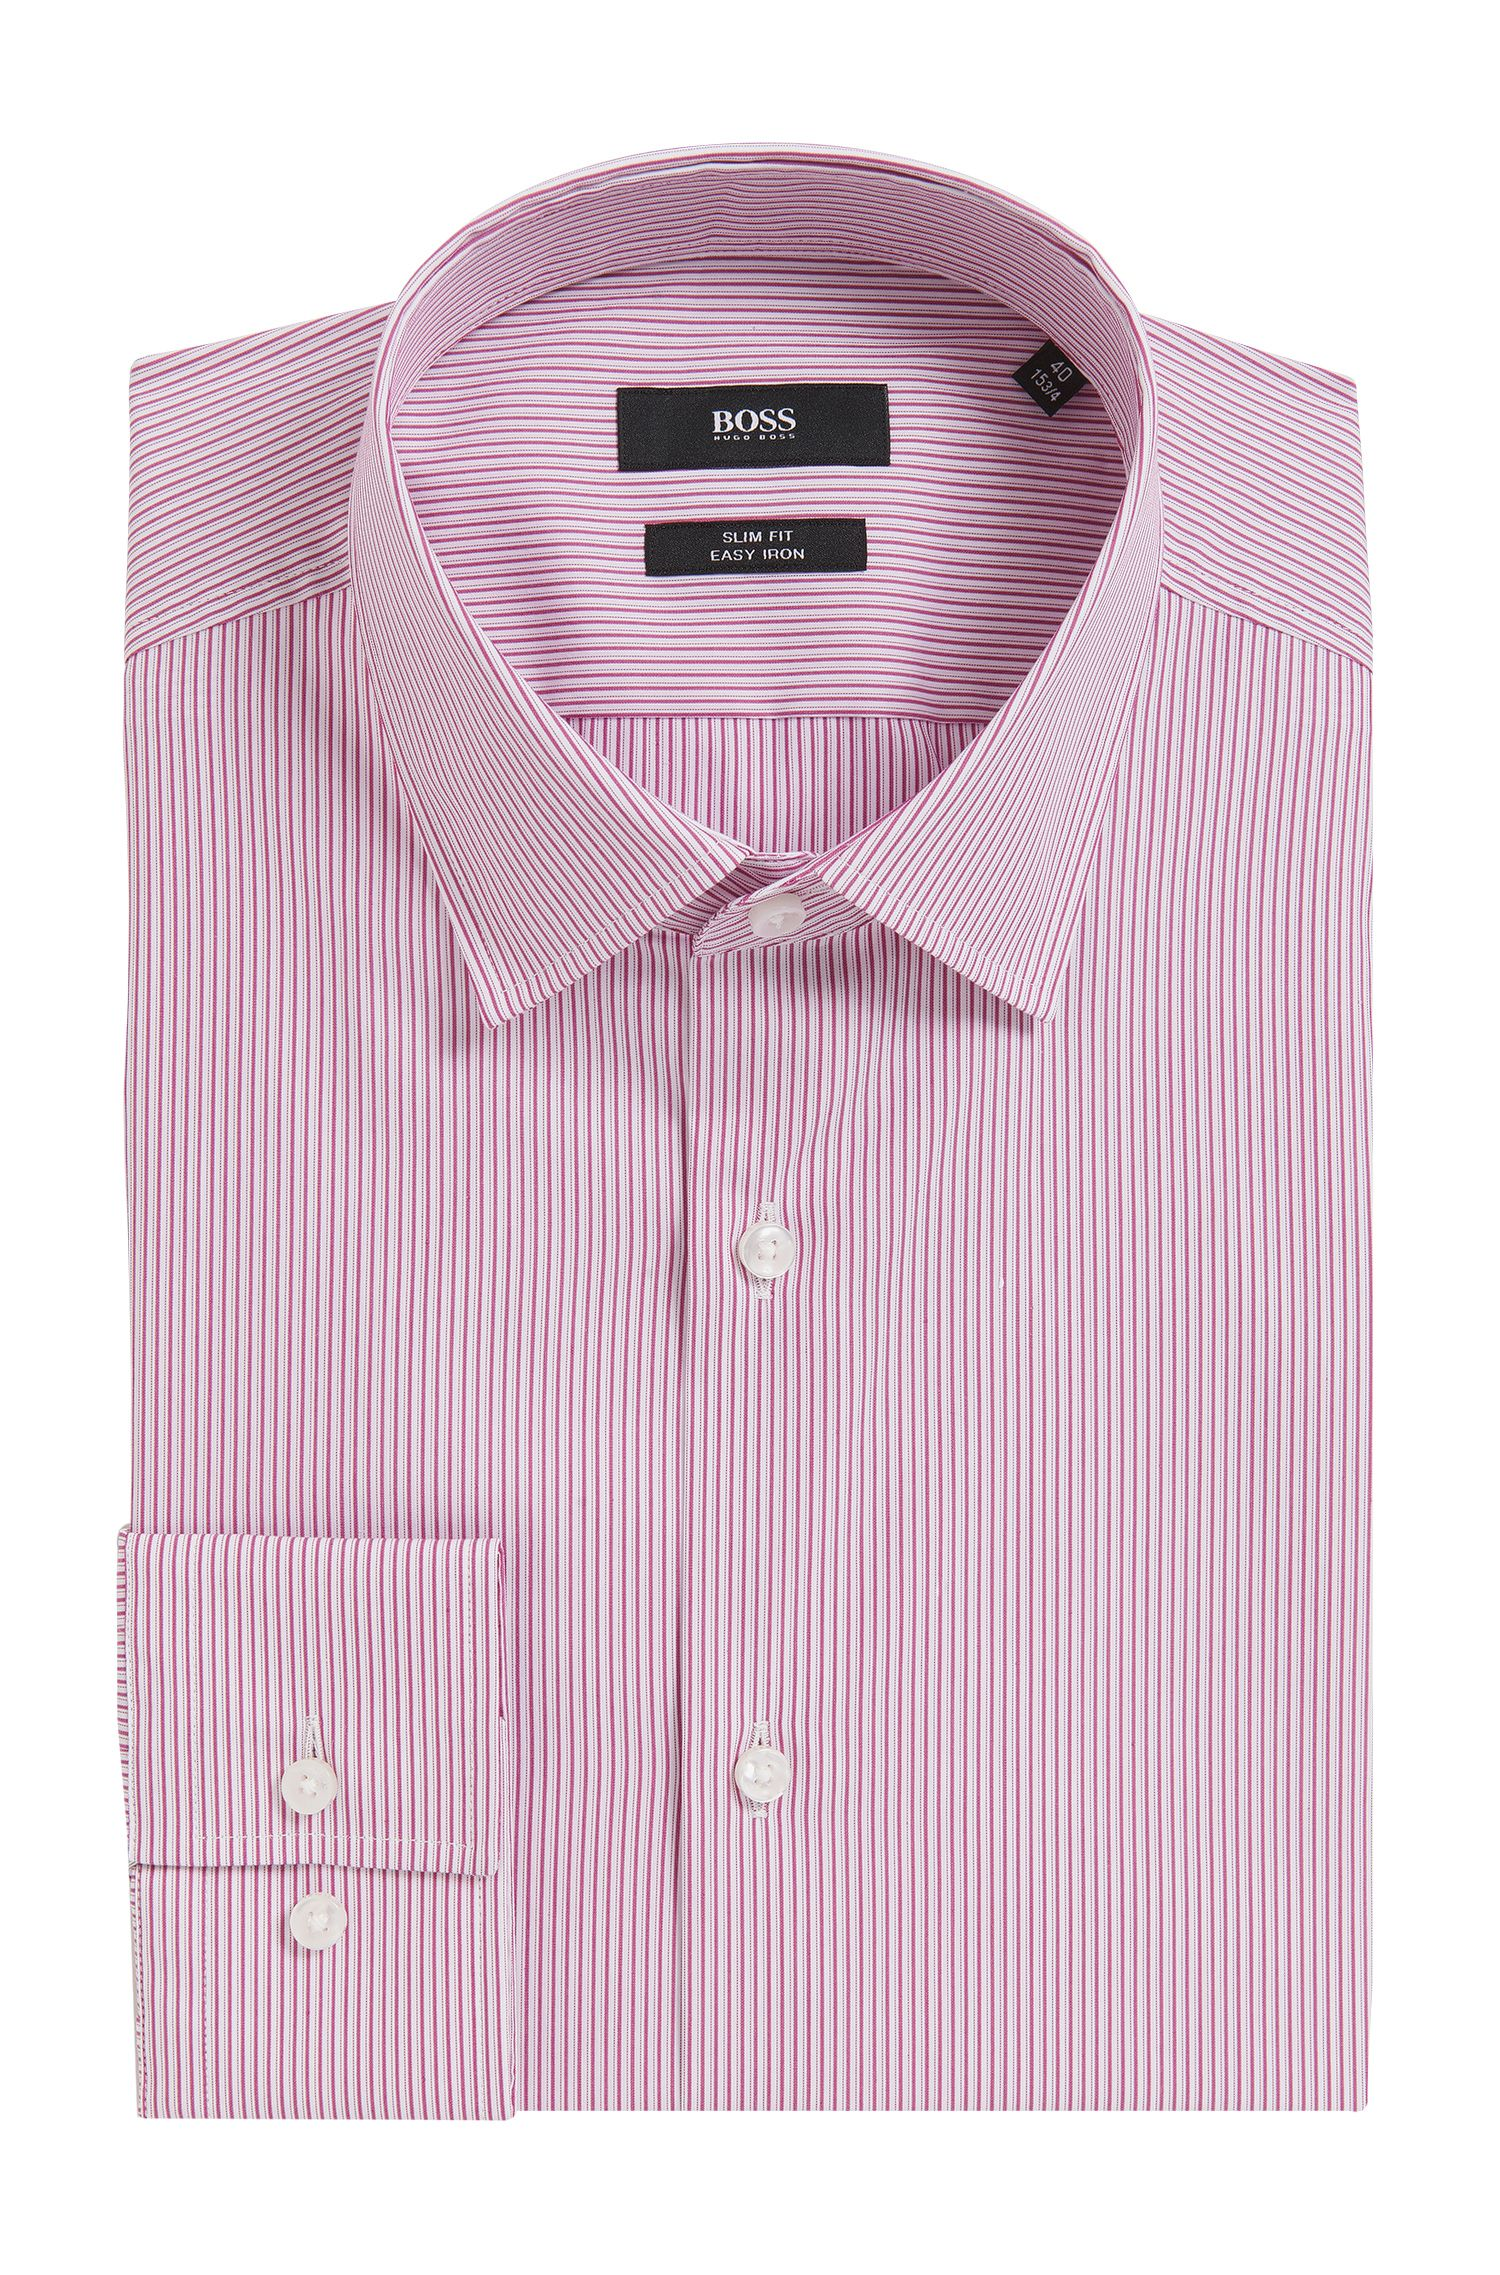 Pinstriped Stretch Cotton Dress Shirt, Slim Fit |  Jenno